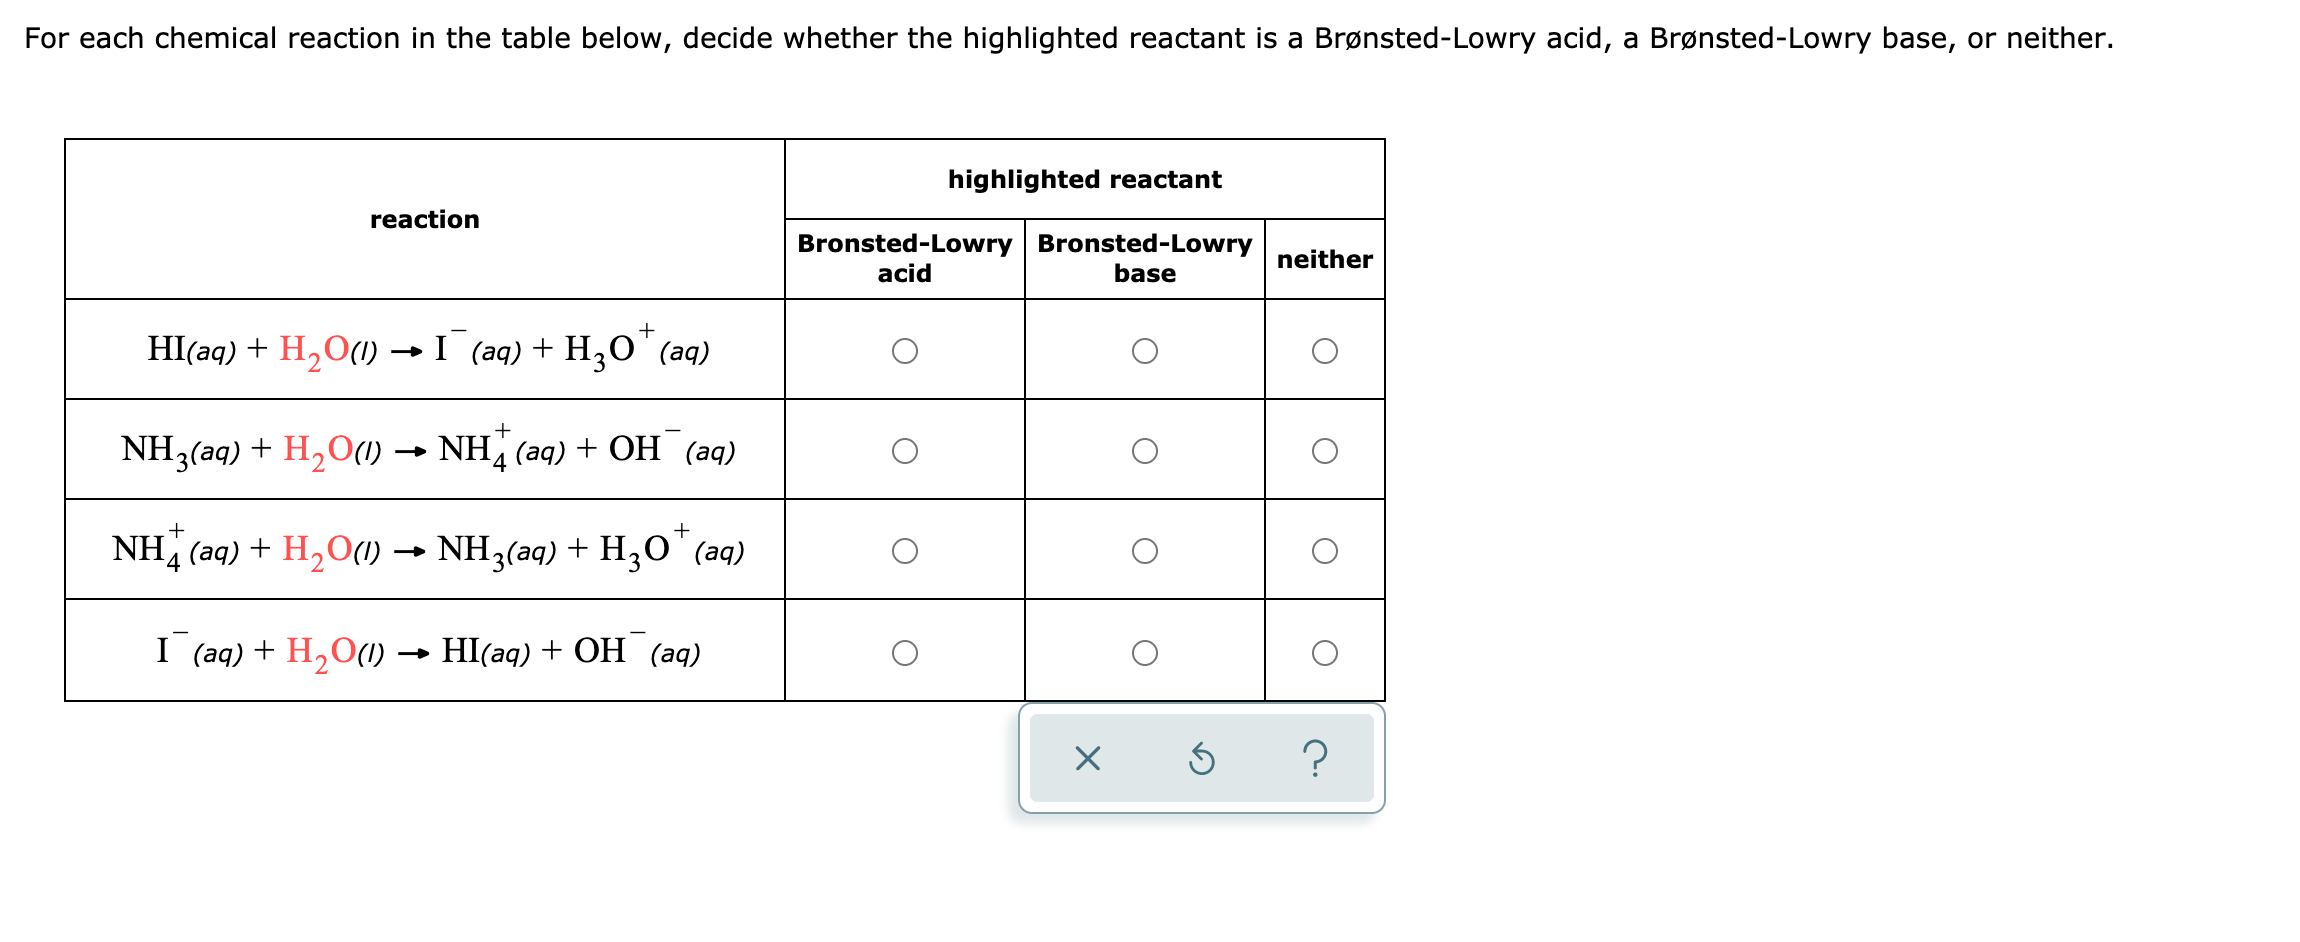 Answered For Each Chemical Reaction In The Table